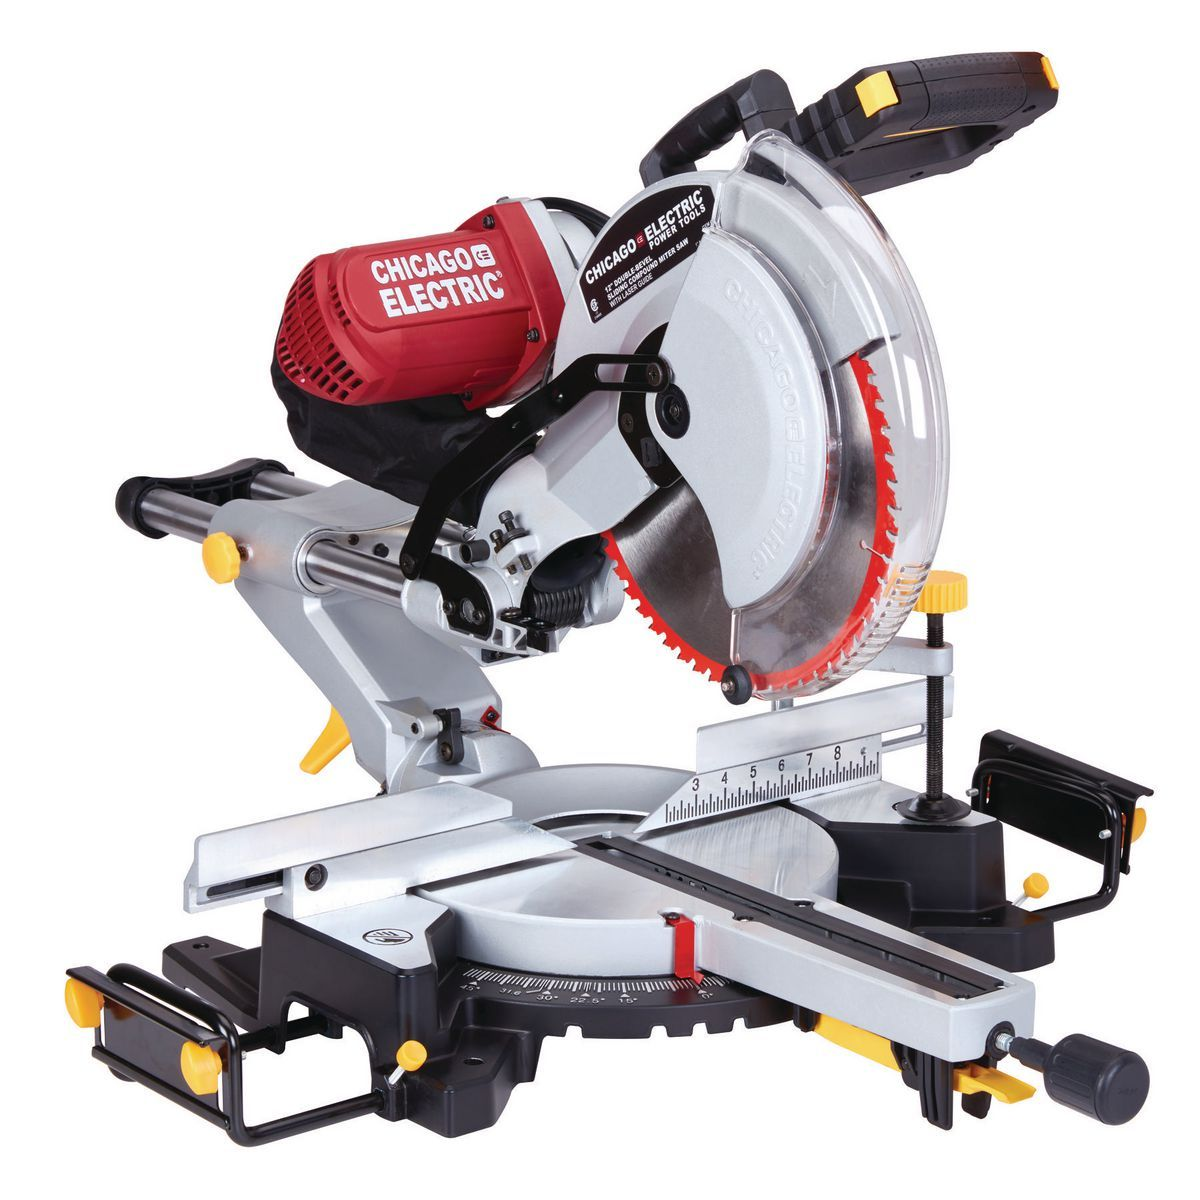 12 In Dual Bevel Sliding Compound Miter Saw With Laser Guide System In 2020 Sliding Compound Miter Saw Miter Saw Compound Mitre Saw